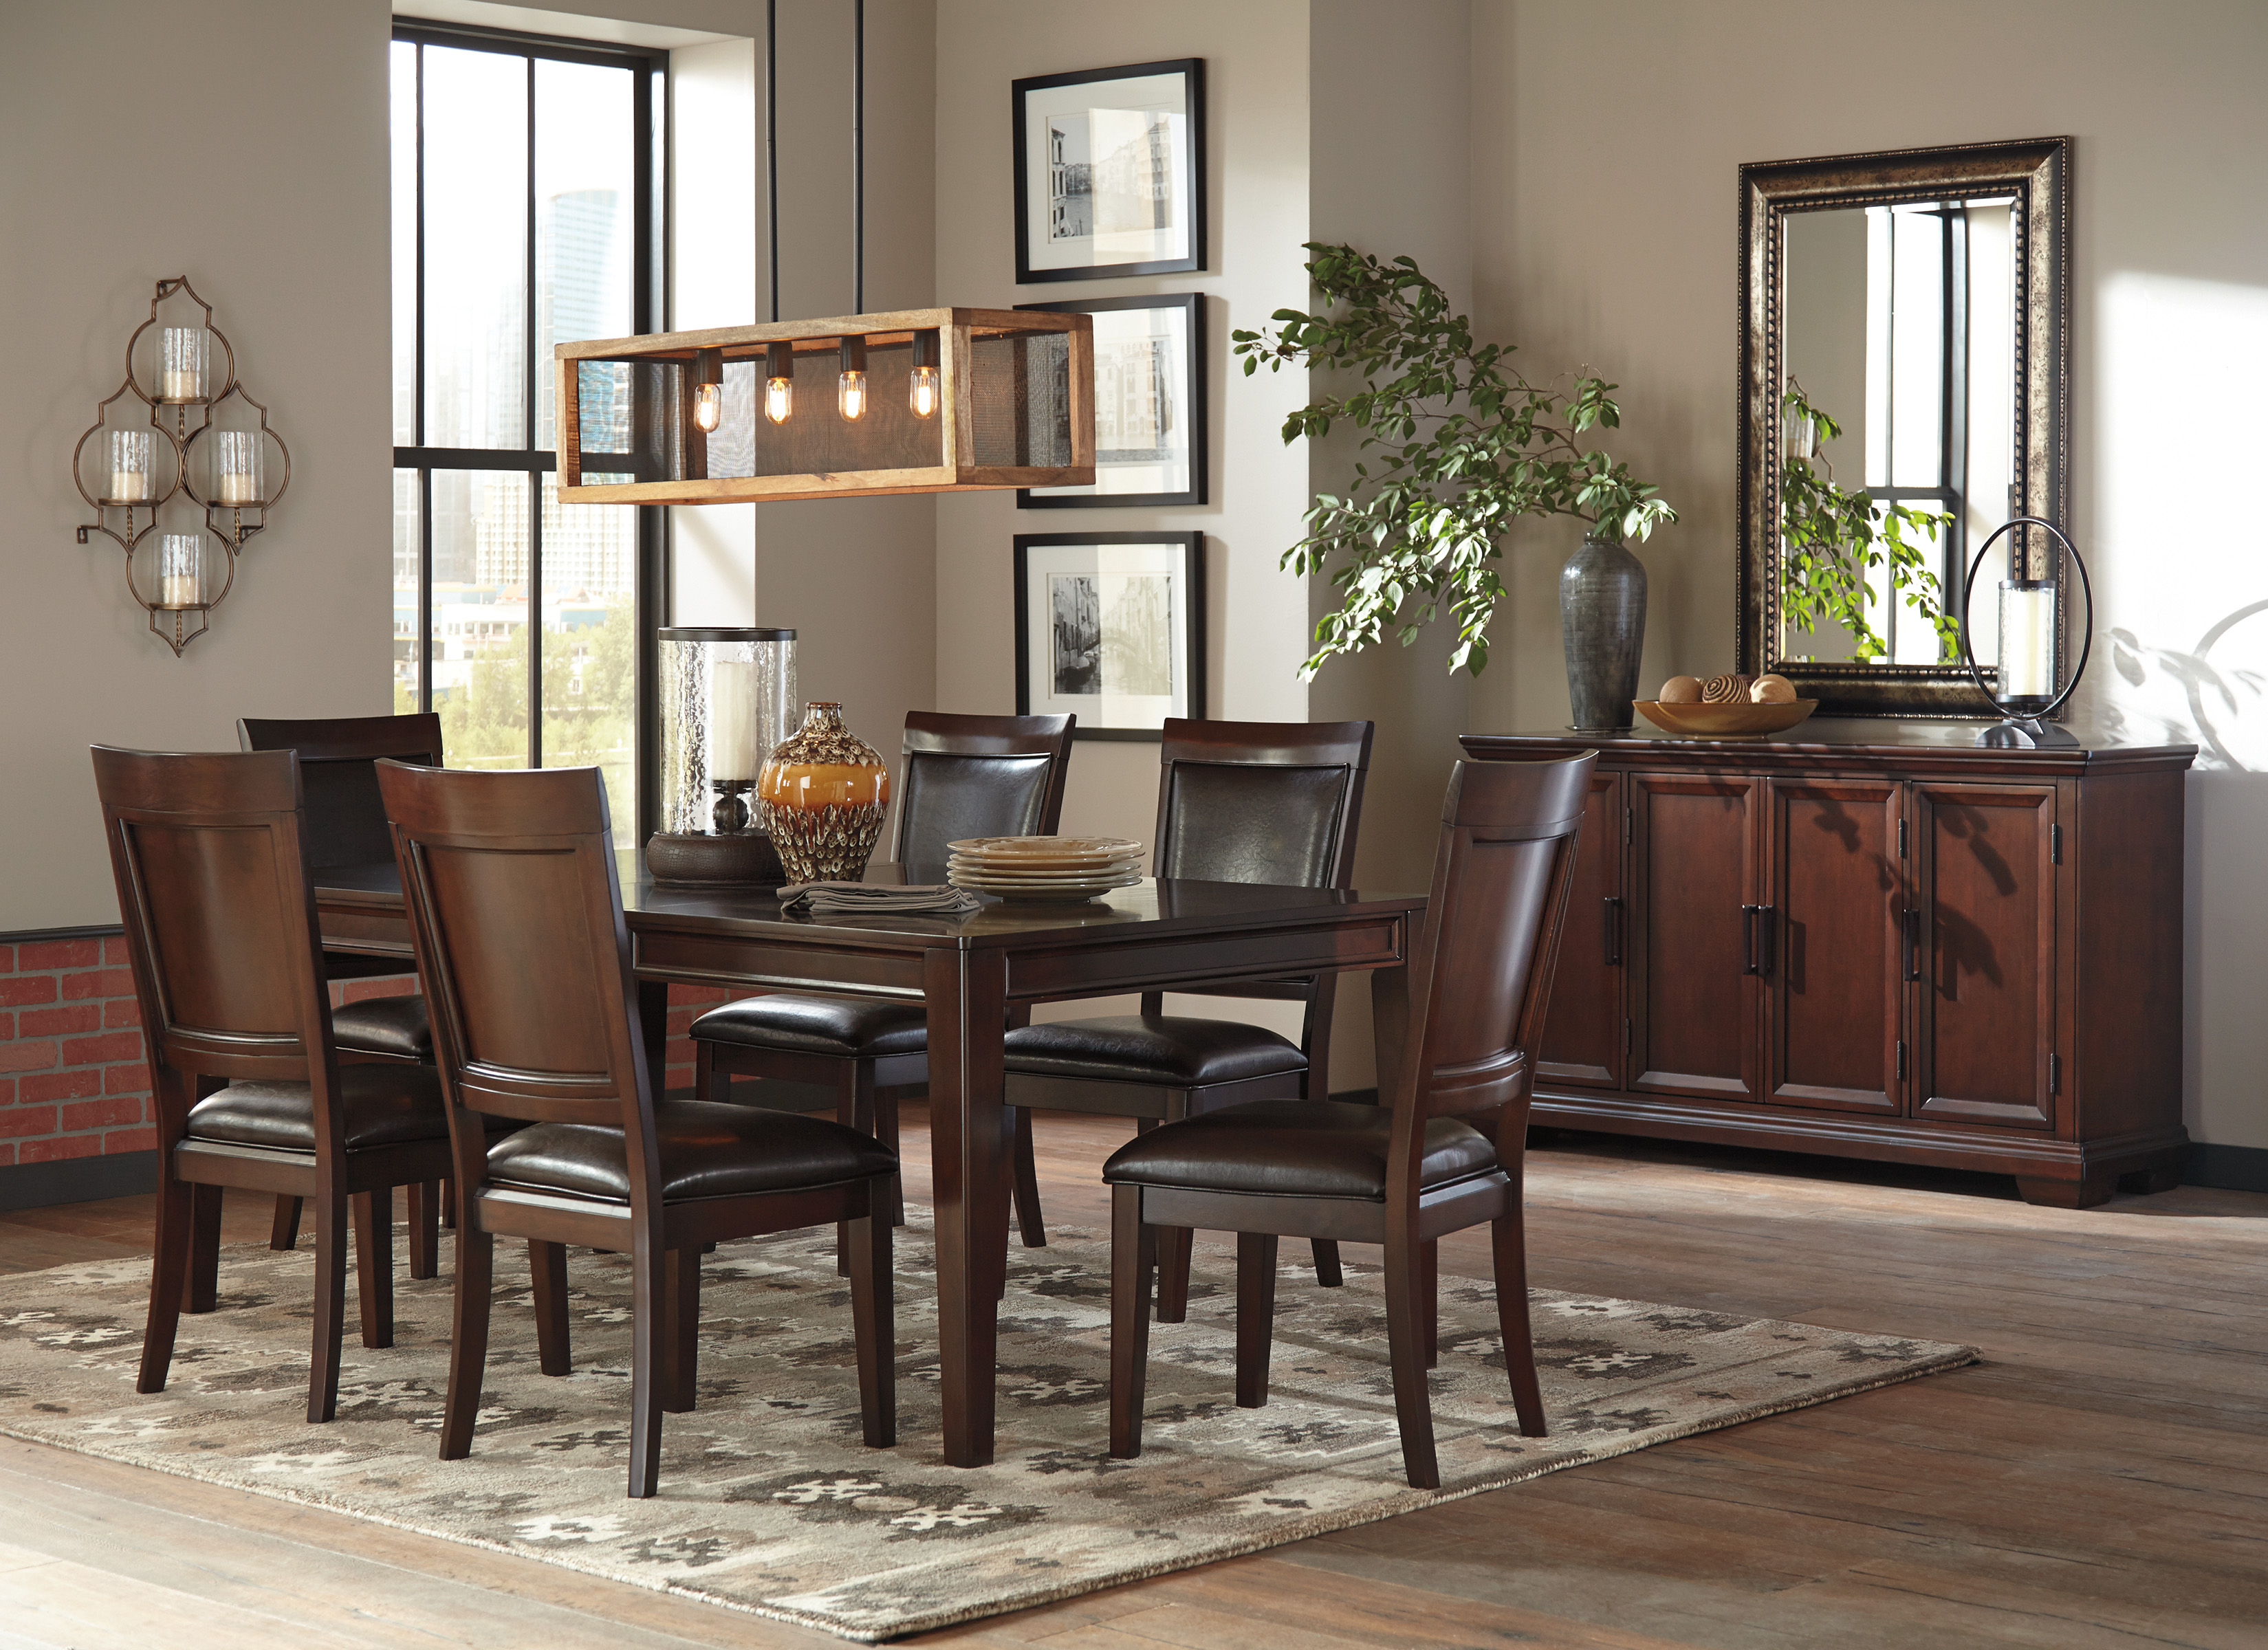 Ashley Shadyn 7 Piece Casual Dining Room Set In A Warm Brown Finish W Removable 18 Quot Extension Leaf Marjen Of Chicago Chicago Discount Furniture